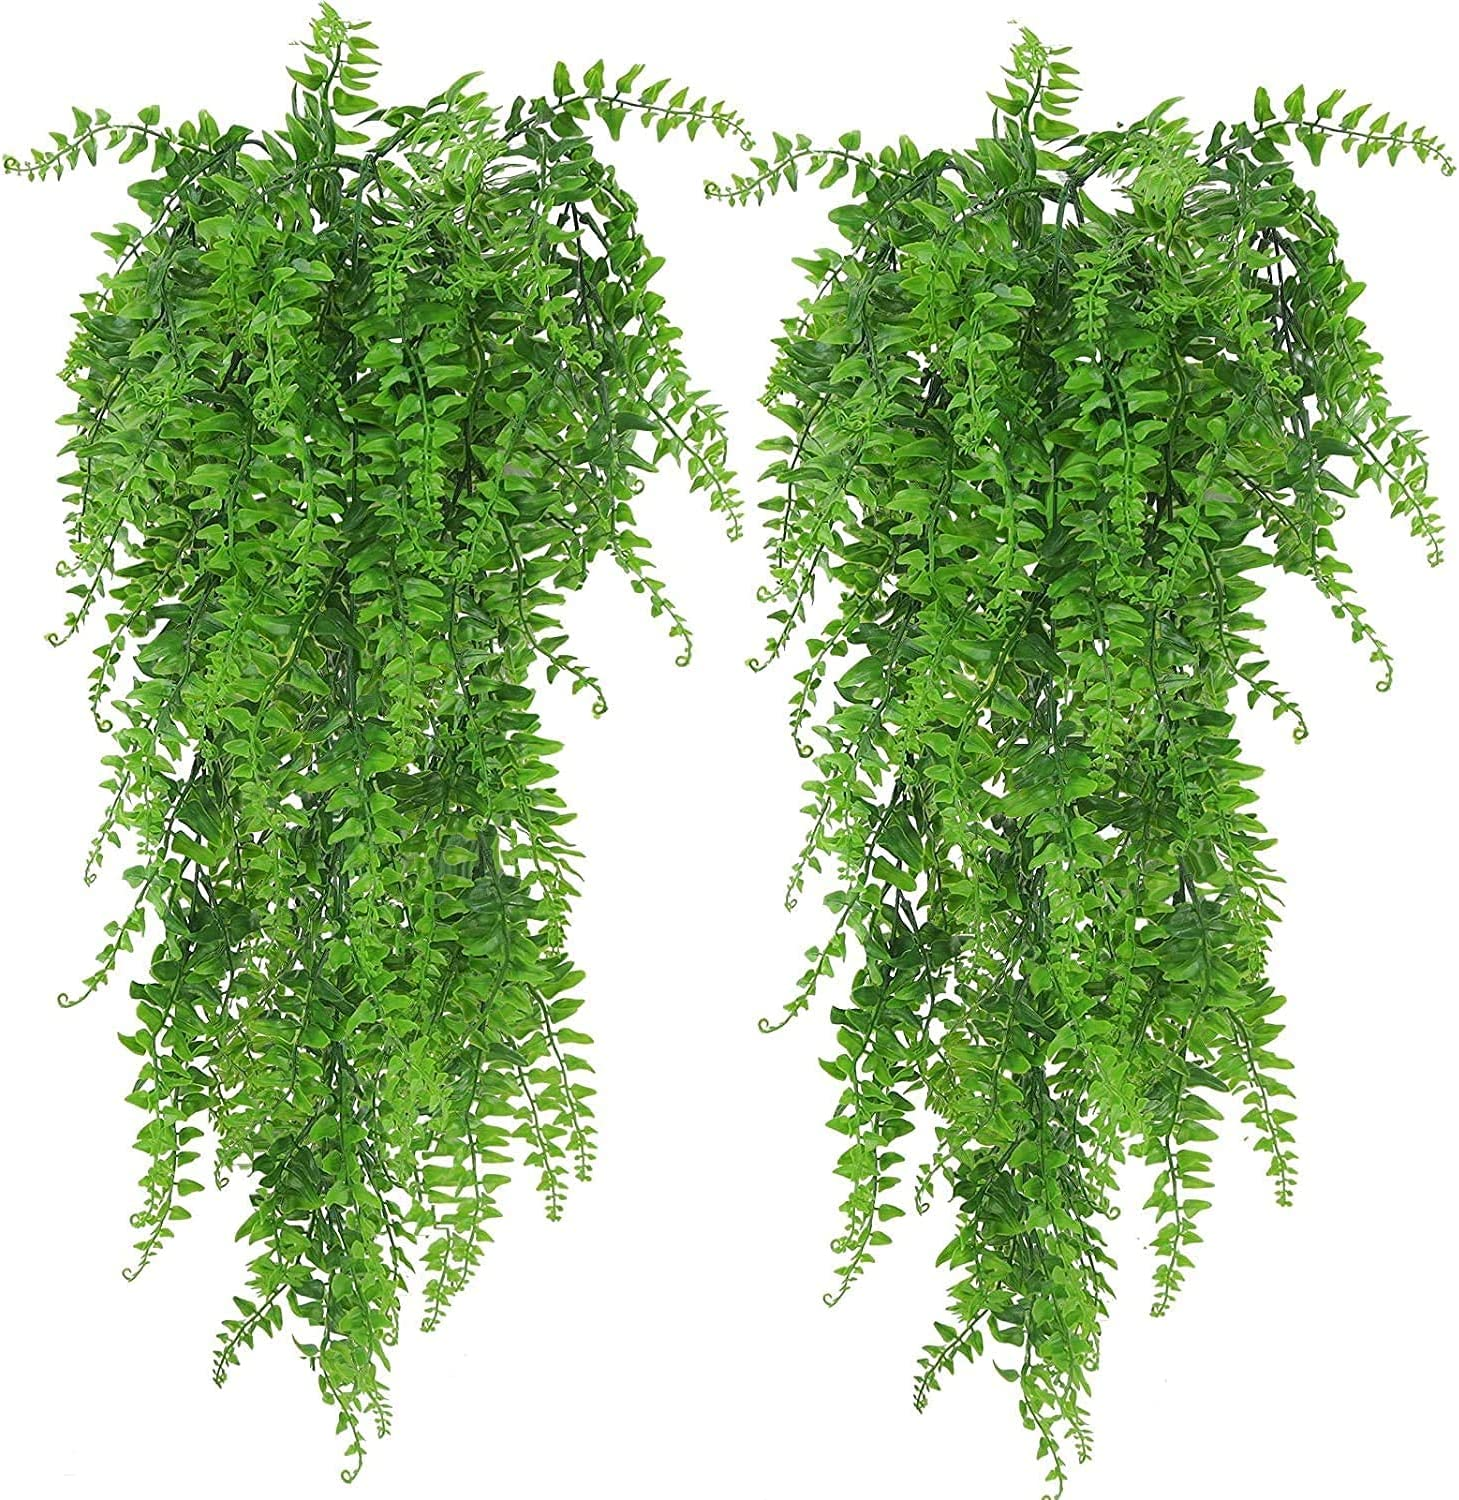 ADORAMOUR 2Pack Fake Hanging Plants for Room Decor Aesthetic, Artificial Plant Faux Vines Wall Decorations for Home Bedroom Garden Patio Porch Balcony Indoor Outdoor